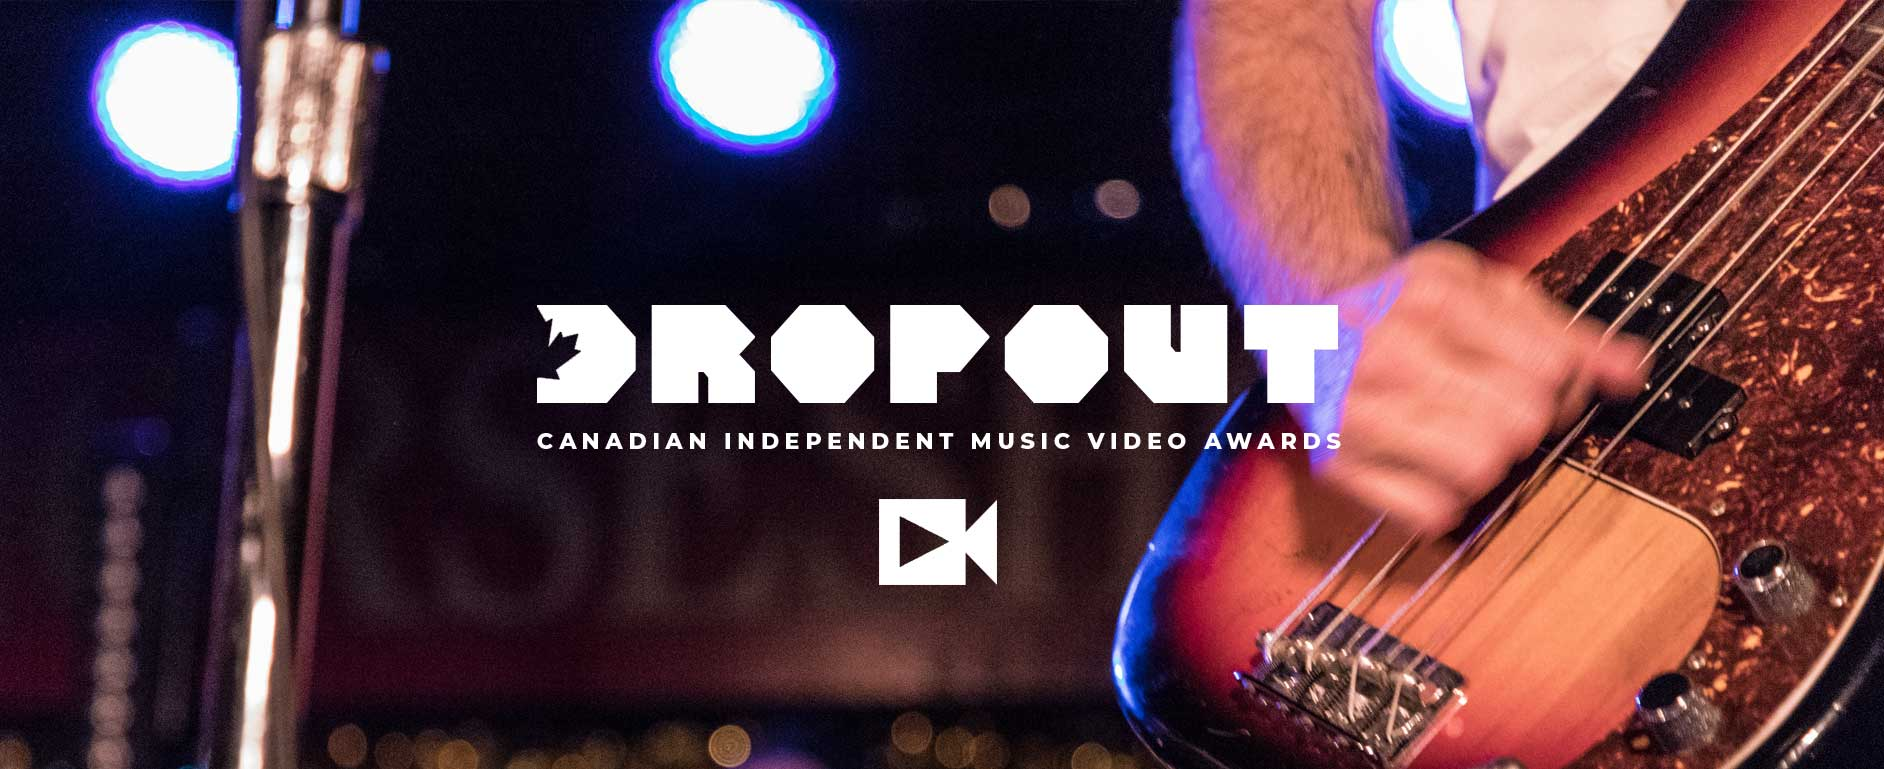 Musique Video Canadian Independent Music Video Awards Dropout Entertainment